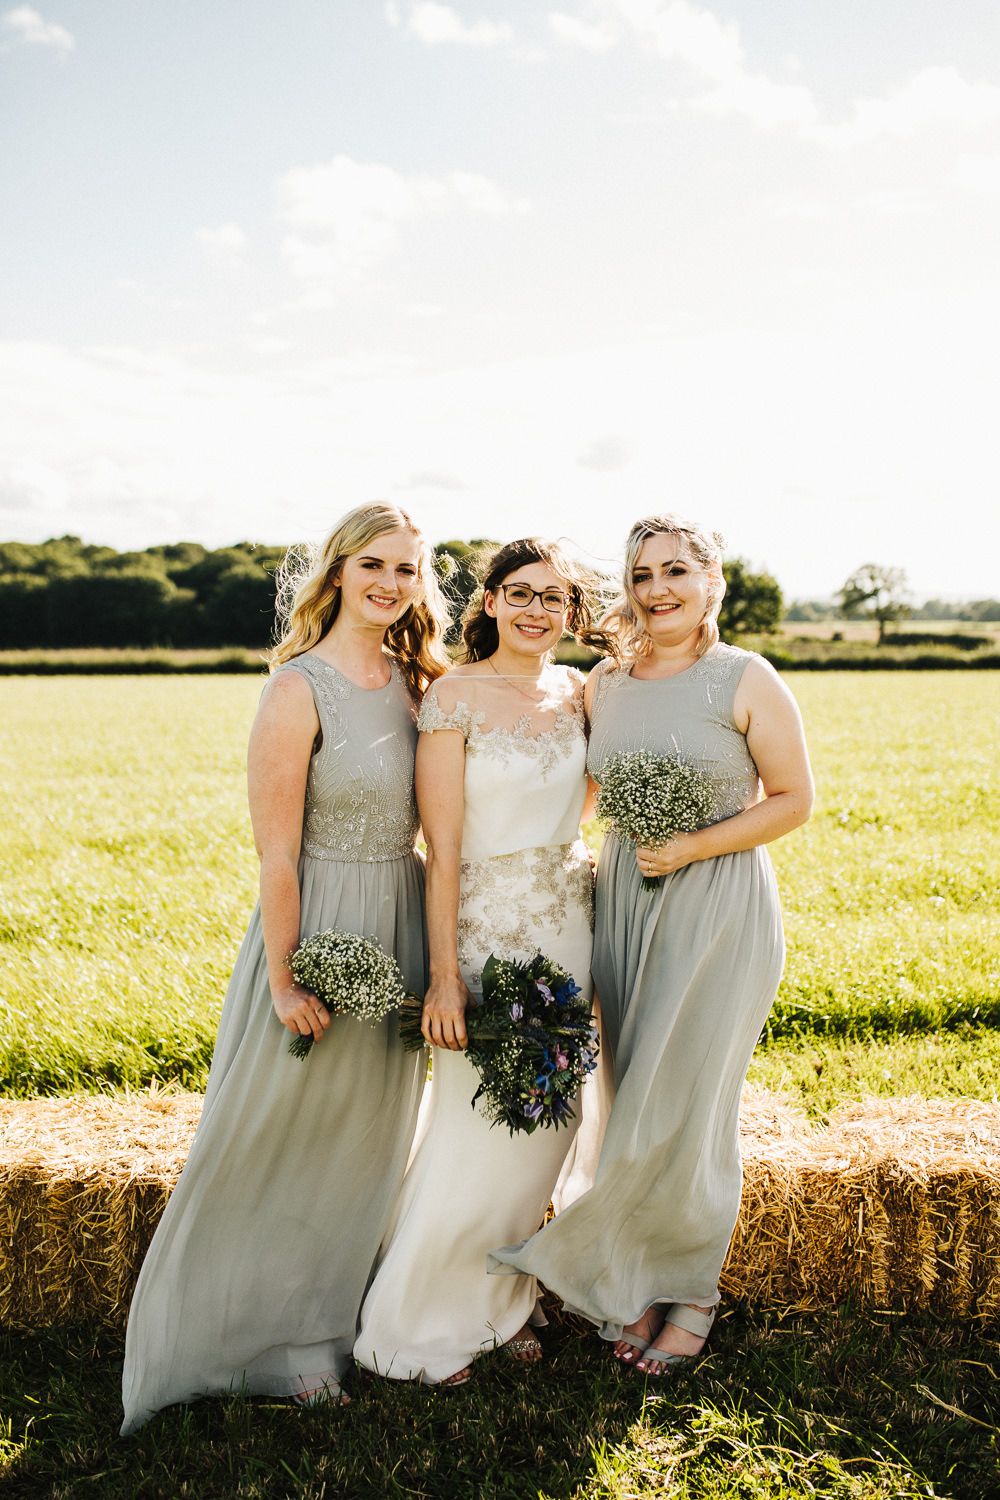 Bride Bridal Enzoani Fitted Wedding Dress Embellished Cap Sleeve Gypsophila Grey Bridesmaids Whimsical Countryside Sperry Tent Wedding Emilie May Photography